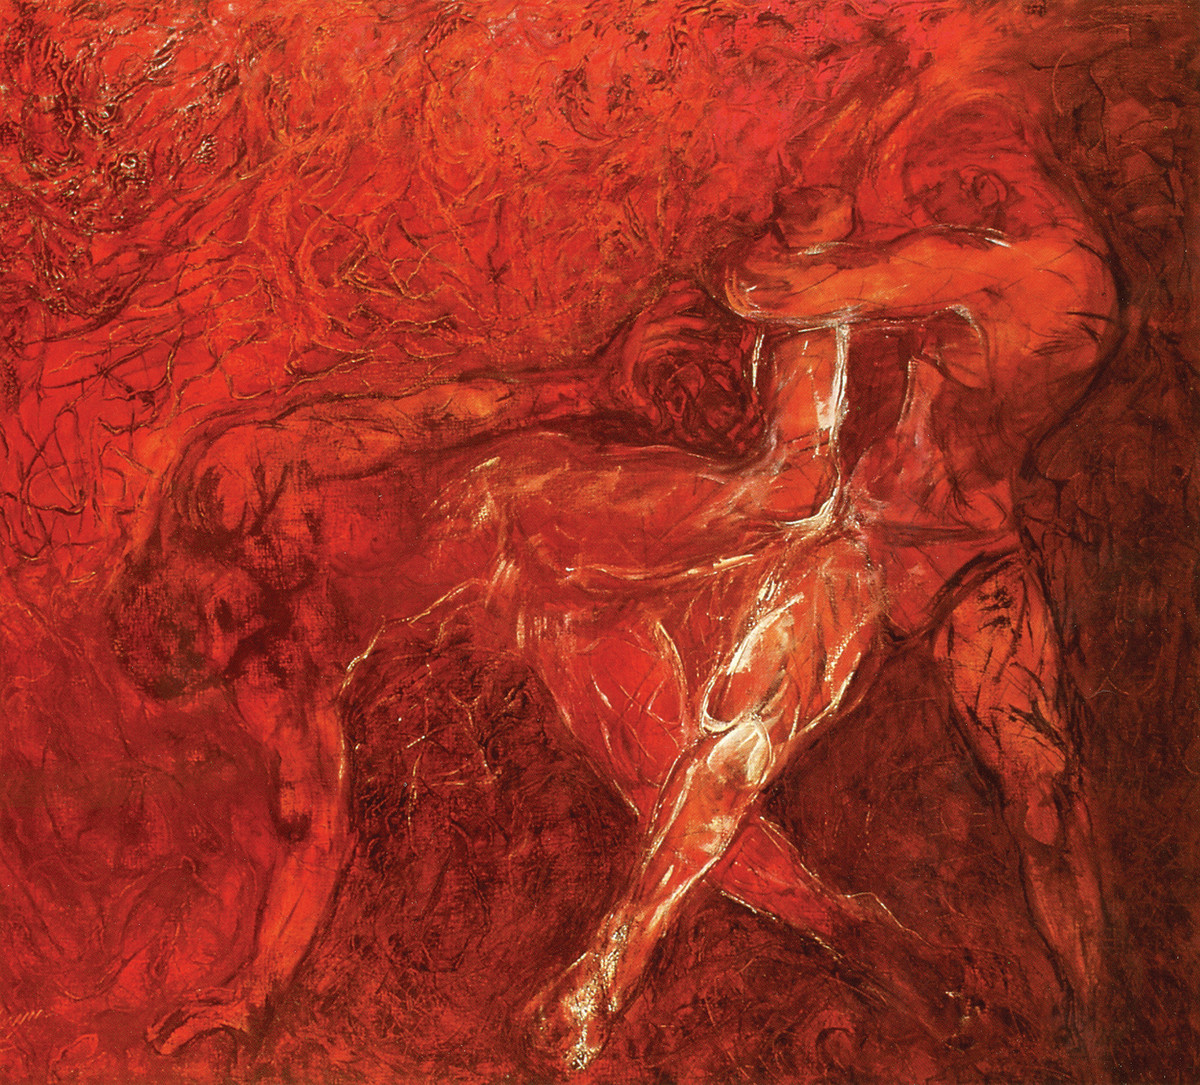 Wrestlers by Deepak Shinde, Expressionism Printmaking, Giclee Print on Hahnemuhle Paper, Red color